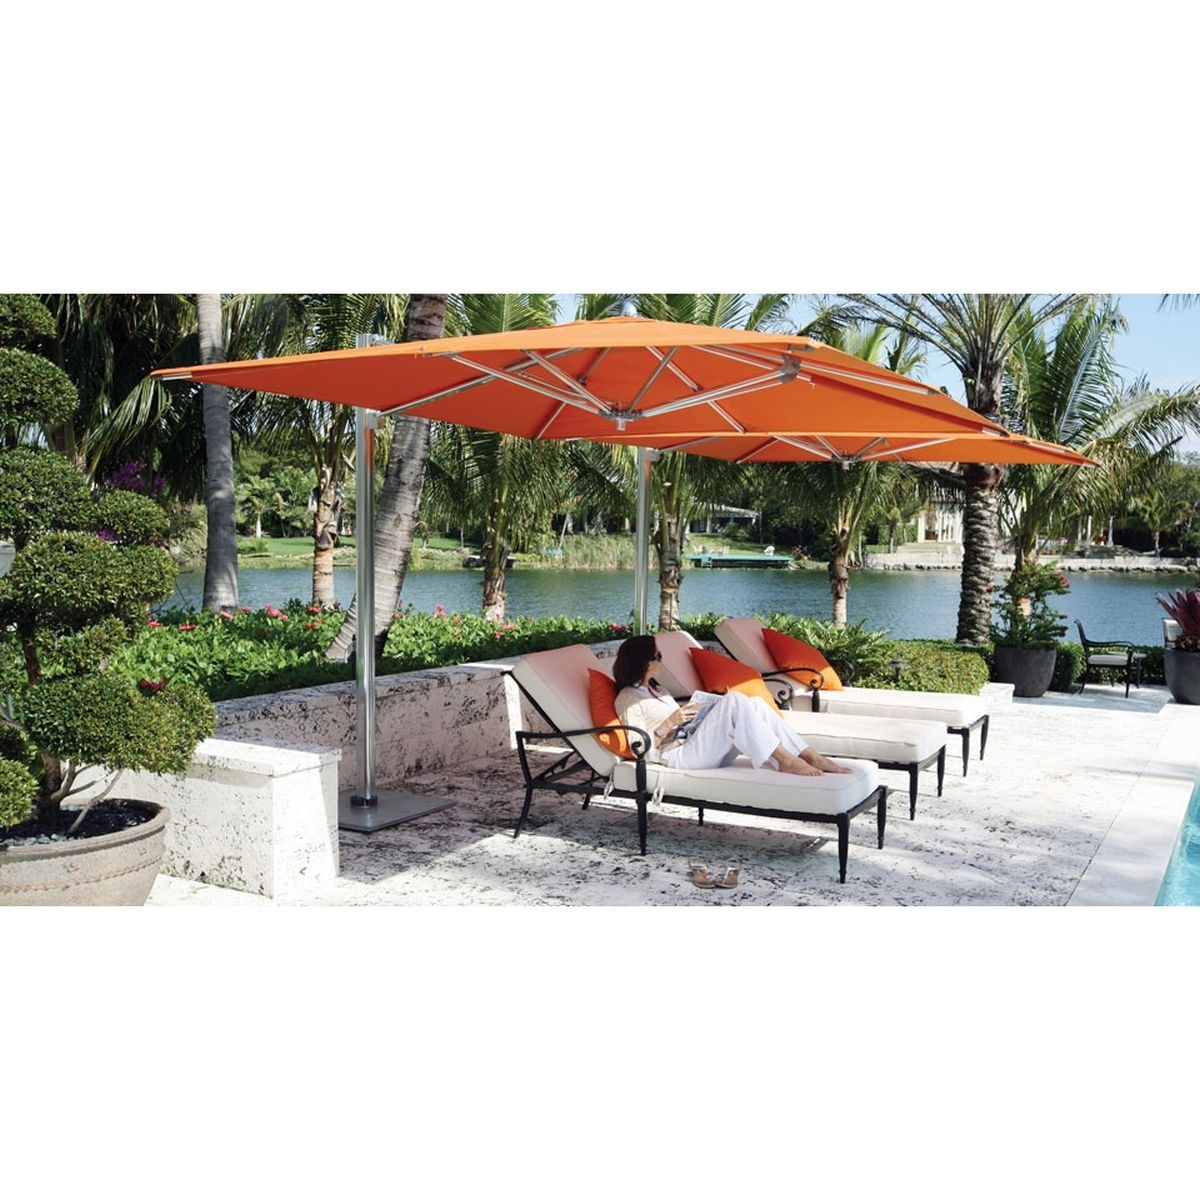 Square Cantilever Patio Umbrellas Throughout Newest Ocean Master Max Single Cantilever 12 Ft. Square Umbrella, Cl (View 20 of 20)